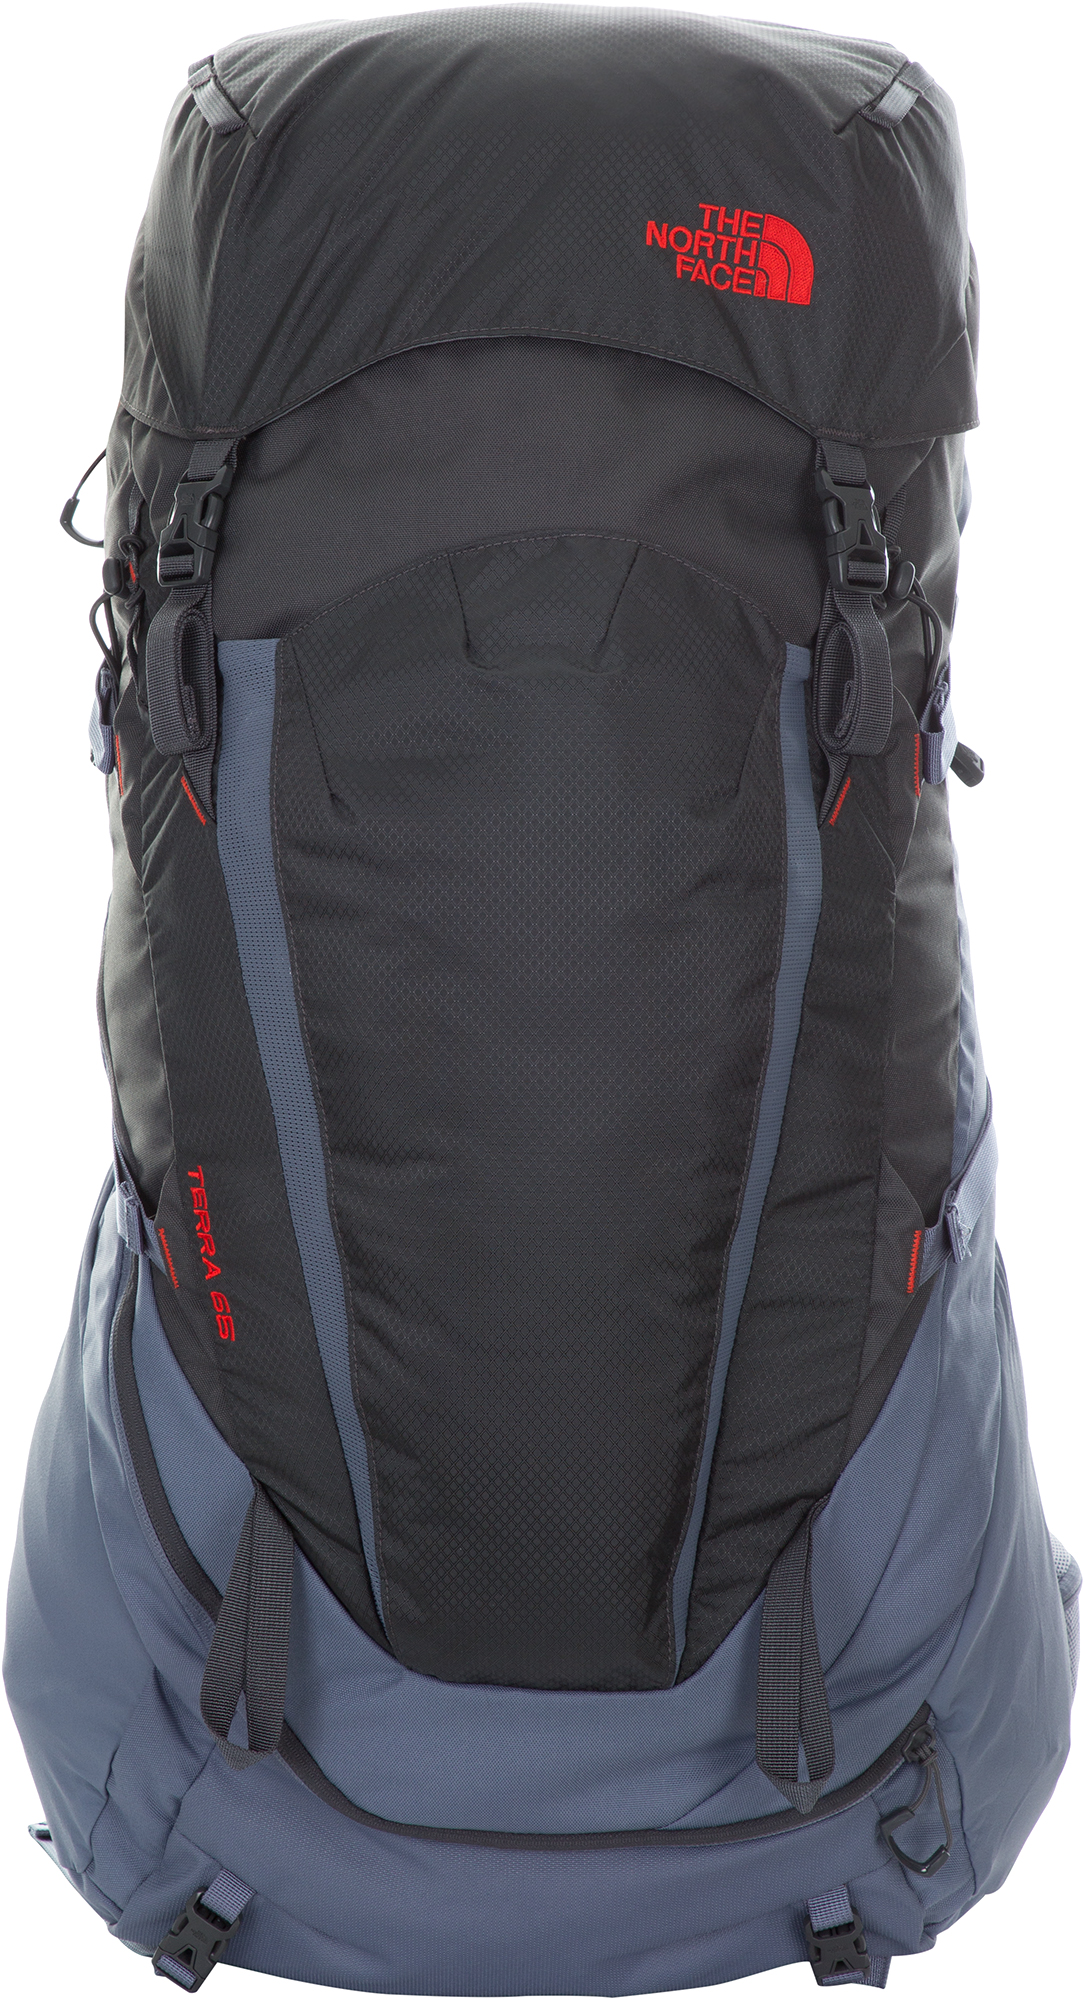 The North Face The North Face Terra 65